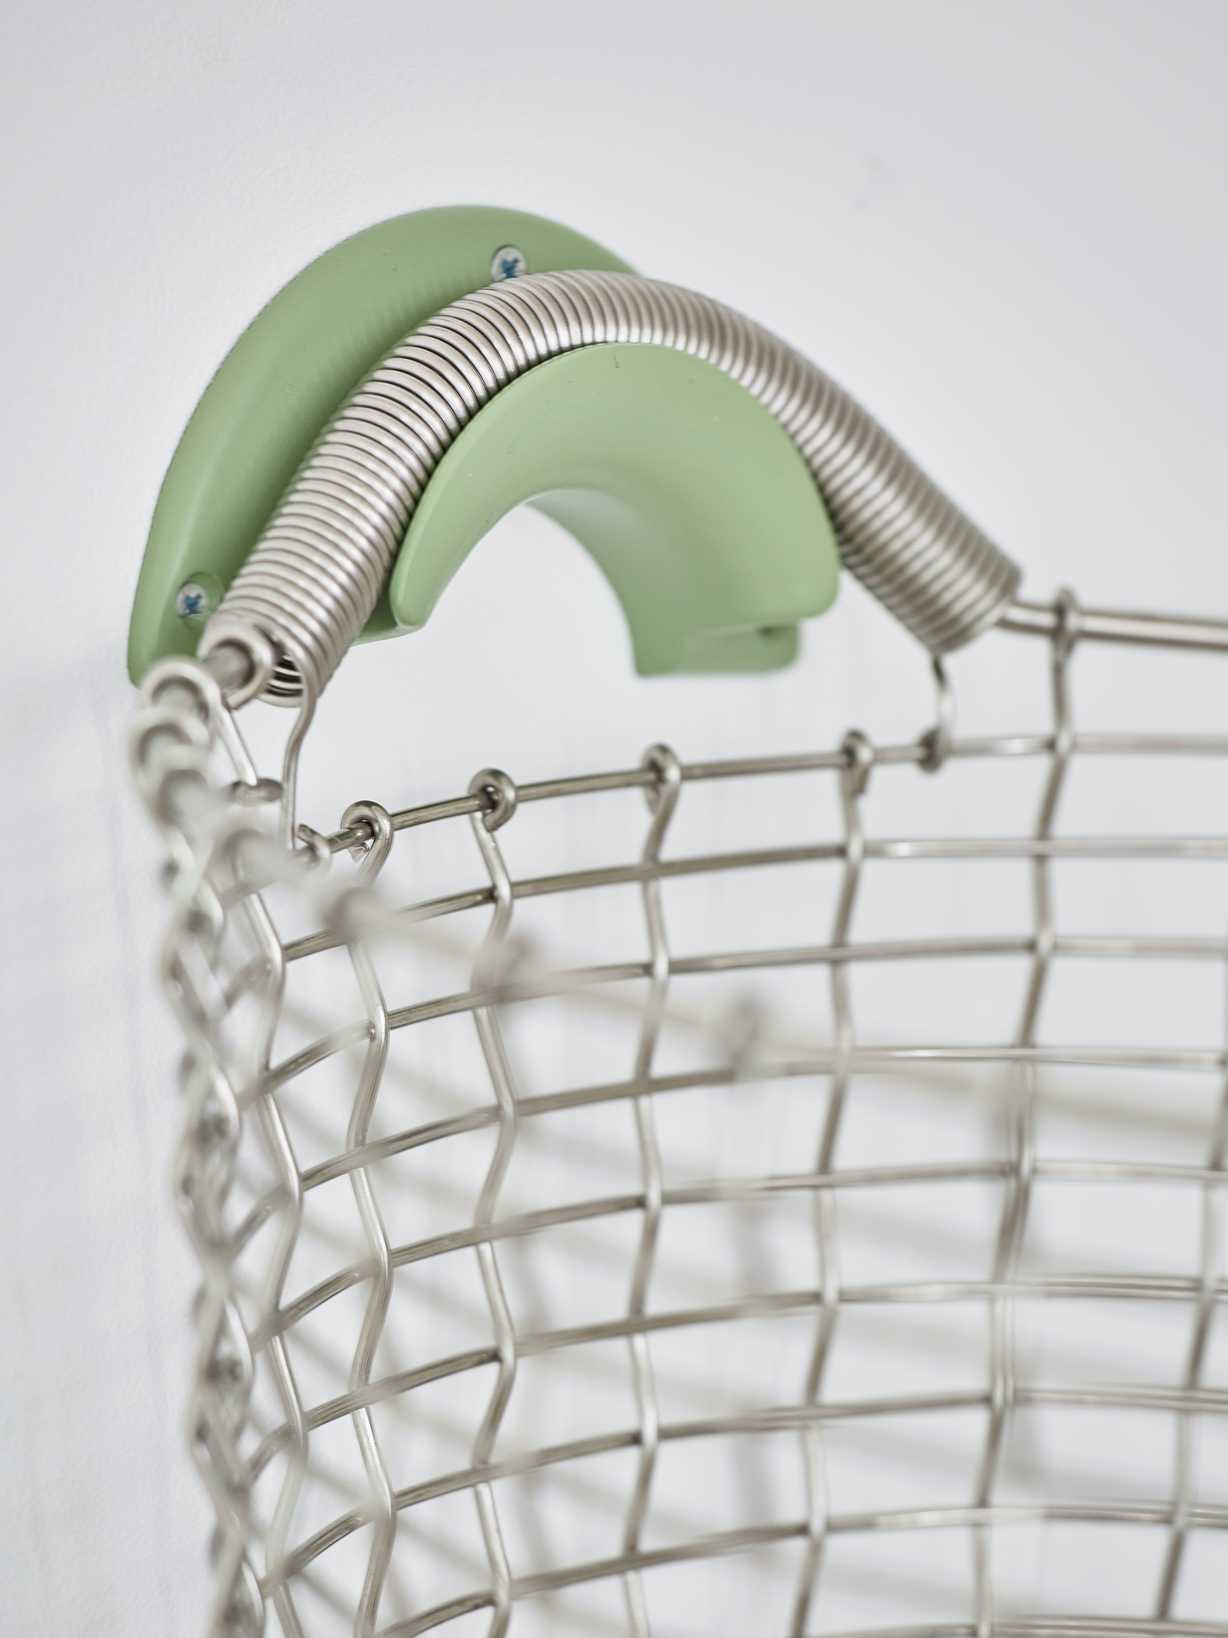 Nordic House Heirloom Basket Hanger - Green